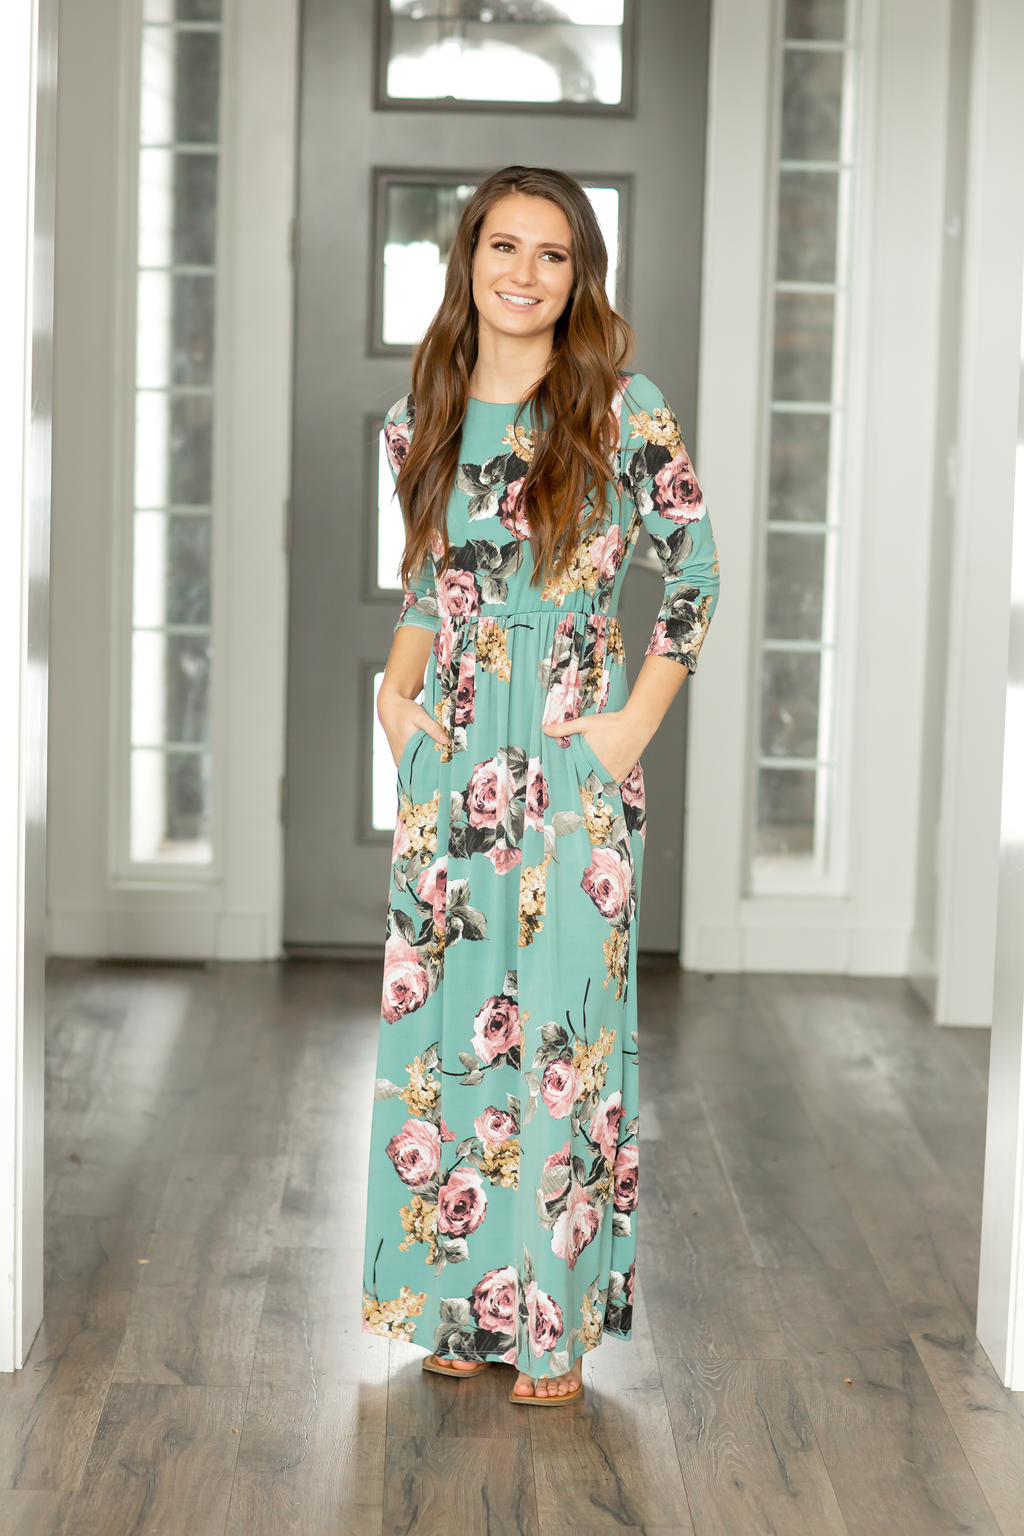 Just For Fun Deep Turquoise Floral Maxi Dress